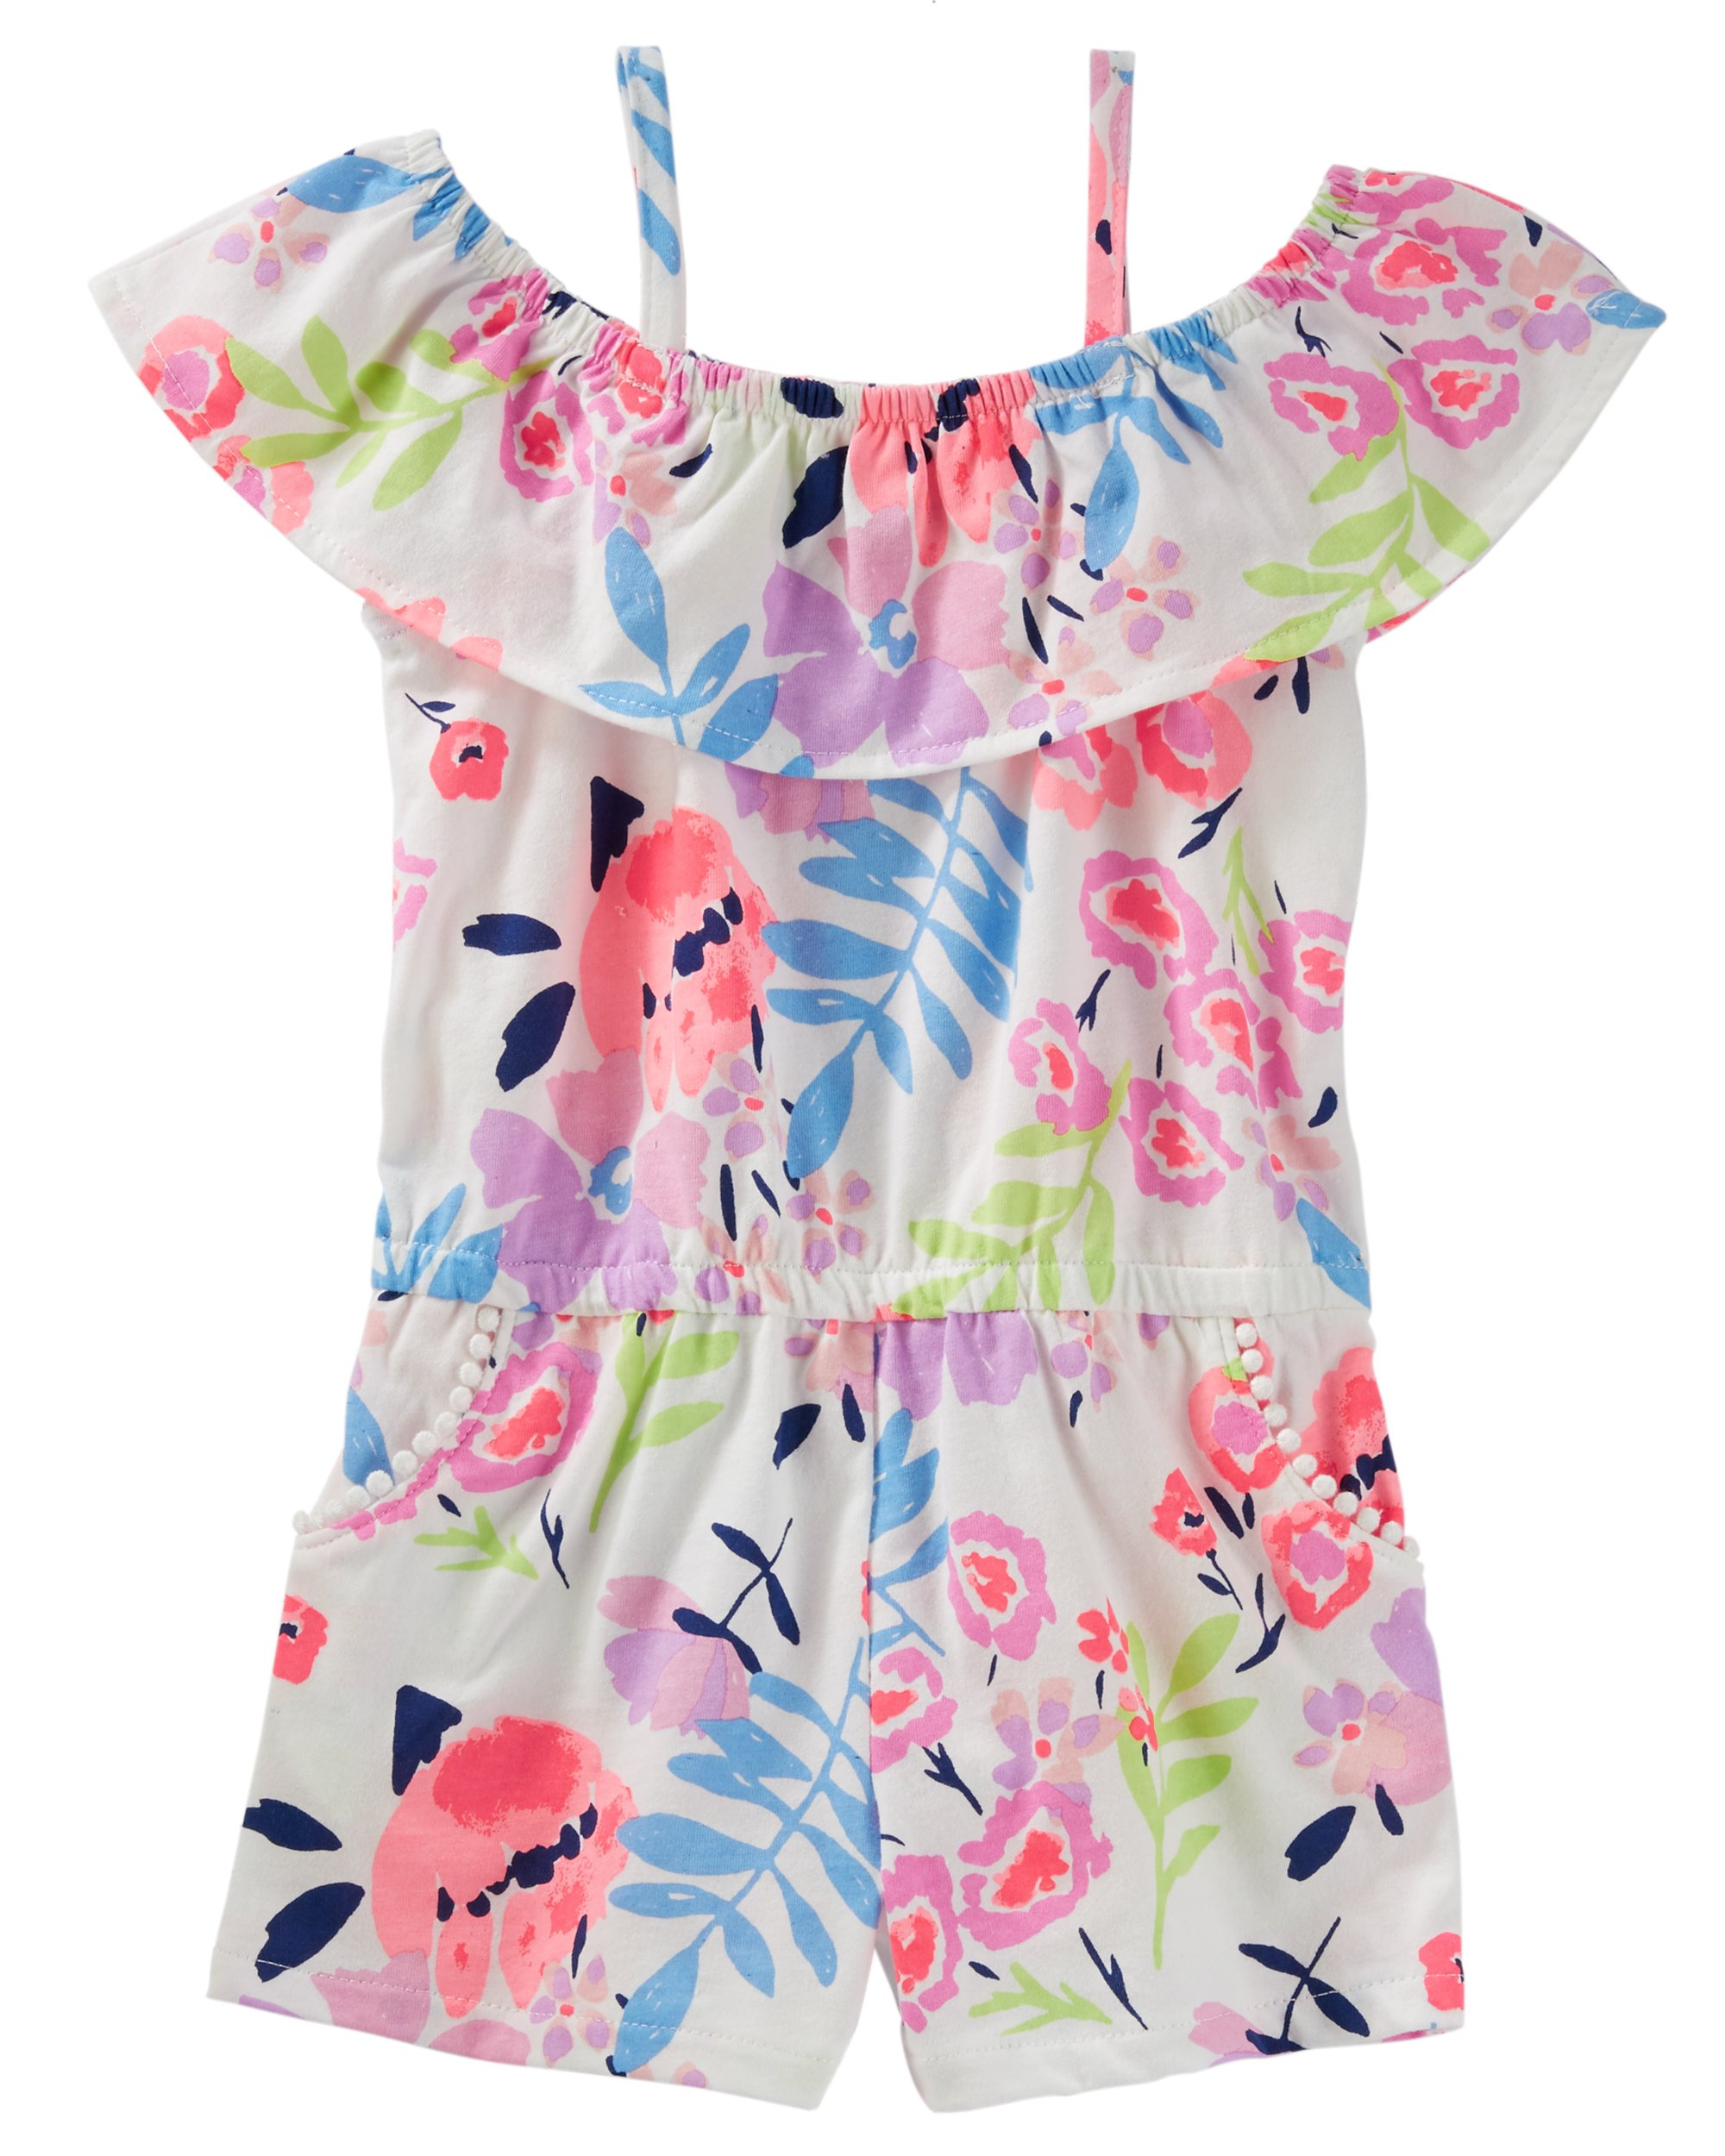 Osh Kosh Girls' Toddler Sleeveless Romper, Tropical, 4T